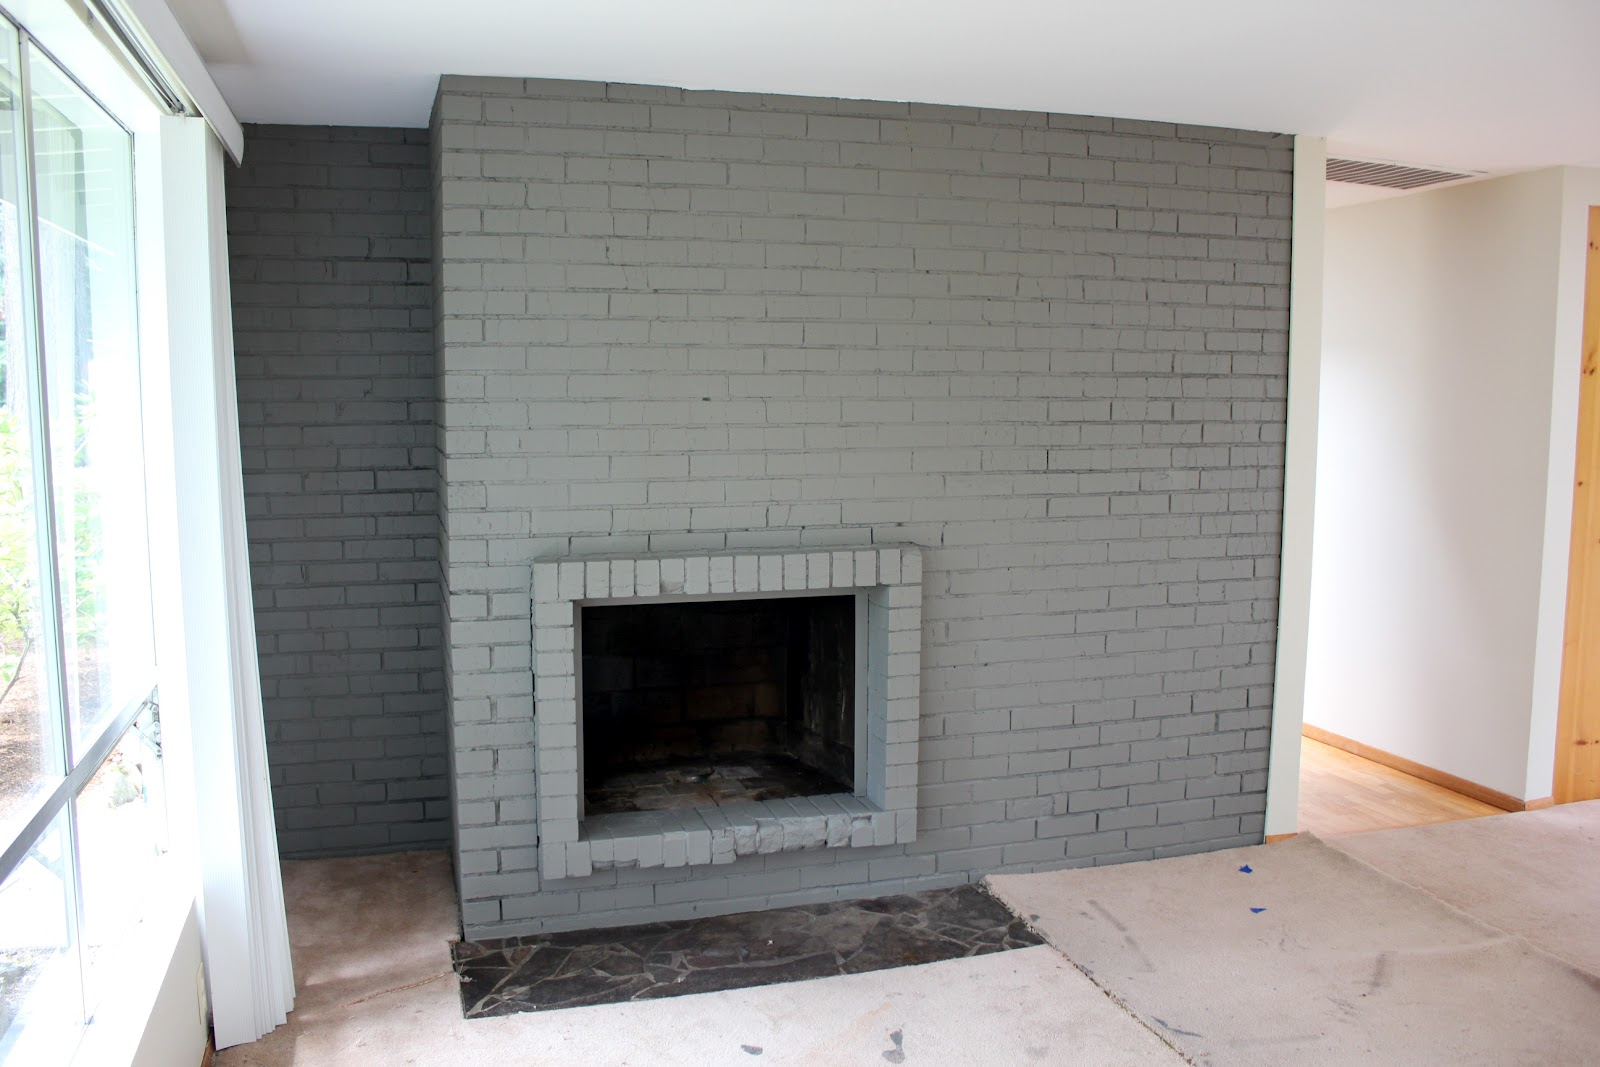 Best Color to Paint Brick Fireplace Fresh some Style Painted Brick Fireplace — Best Chair